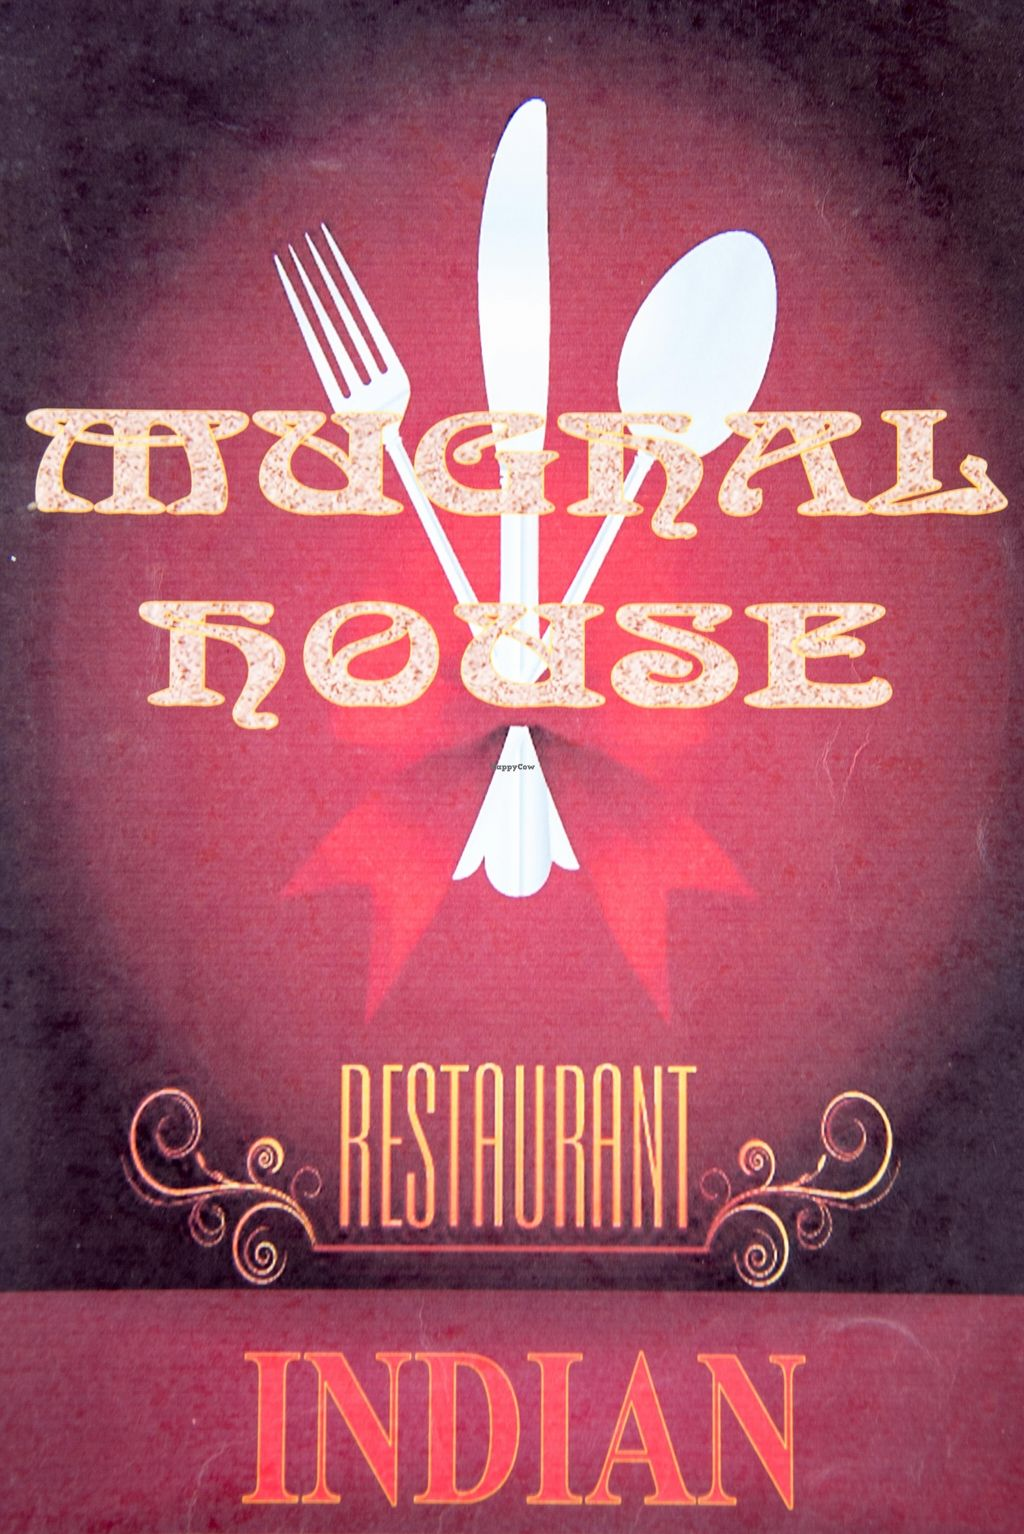 """Photo of Mughal House Indian Halal Restaurant  by <a href=""""/members/profile/MeikoNeuman"""">MeikoNeuman</a> <br/>Mughal House Indian Halal Restaurant in Mui Ne.  Our logo <br/> January 25, 2016  - <a href='/contact/abuse/image/68664/133609'>Report</a>"""